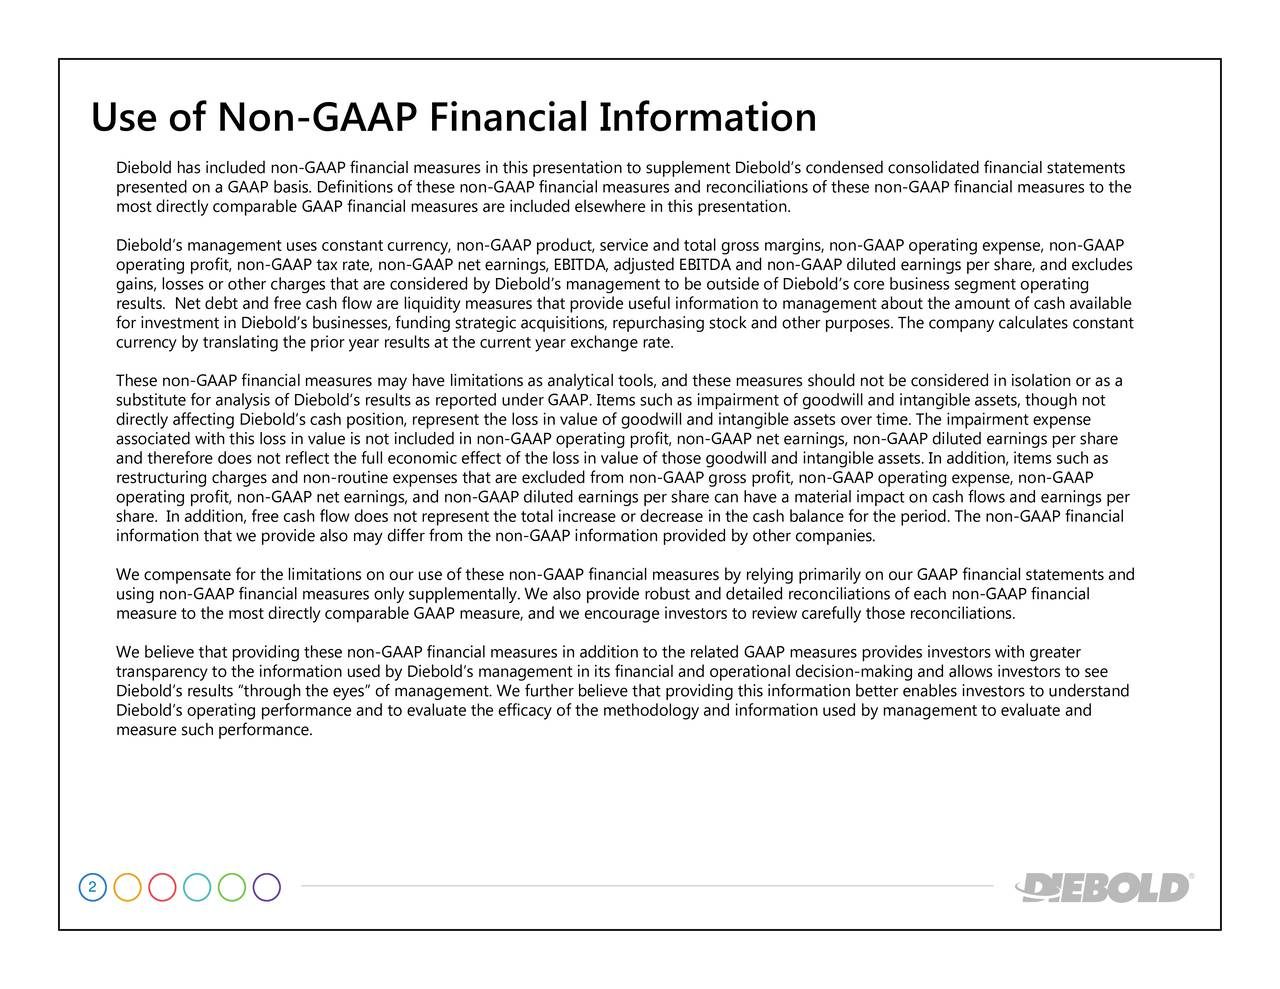 AP and statementso the ratinges arnings per ancial eater casulates constantrgs per share atements and ors to see , though not to understand n-GAAP financial ment on, items such as n-Gdiluted earnings per share, an GAAP operating expense, non-GA gs, non-Gterial impact on cash flows and ed by management to evaluate condensed consolidated financialould not be considered in isol ide of Diebolds core business segment ope rmation to management about the amount ofcalc d operational decision-making and allows invest rease in the cash balanc in this presentation. g profit, non-GAAP net earnin rvice and total gross margins, no DA, adjusted EBITDA and non-GAAPom non-GAAP gross profiddition to the related GAAP meas tation to supplement Diebolds encourage invthe methodology and informatione reconciliations. AAPvalue of goted earnings per share can have a mame. The impair year exchange rate. are included elsewhere e non-GAAP information provided by other companies. uidity measures that provide useful info nsidered by Diebolds management to be outs nagement. We further believe that providing this information better enables investors undsults at the included in non-GAAP operatin inernings, and non-GAAP dilued used by Diebolds management in its financial an flow does not represent the total increase or dec Diebold has included non-GAAP financial measures in this presenfinancial measures and reconciliations of these non-GAAP financial meacacy ofntangible assets. In additi GAAP financial stAAP fin Use of Non-GAAP Financial Information 2